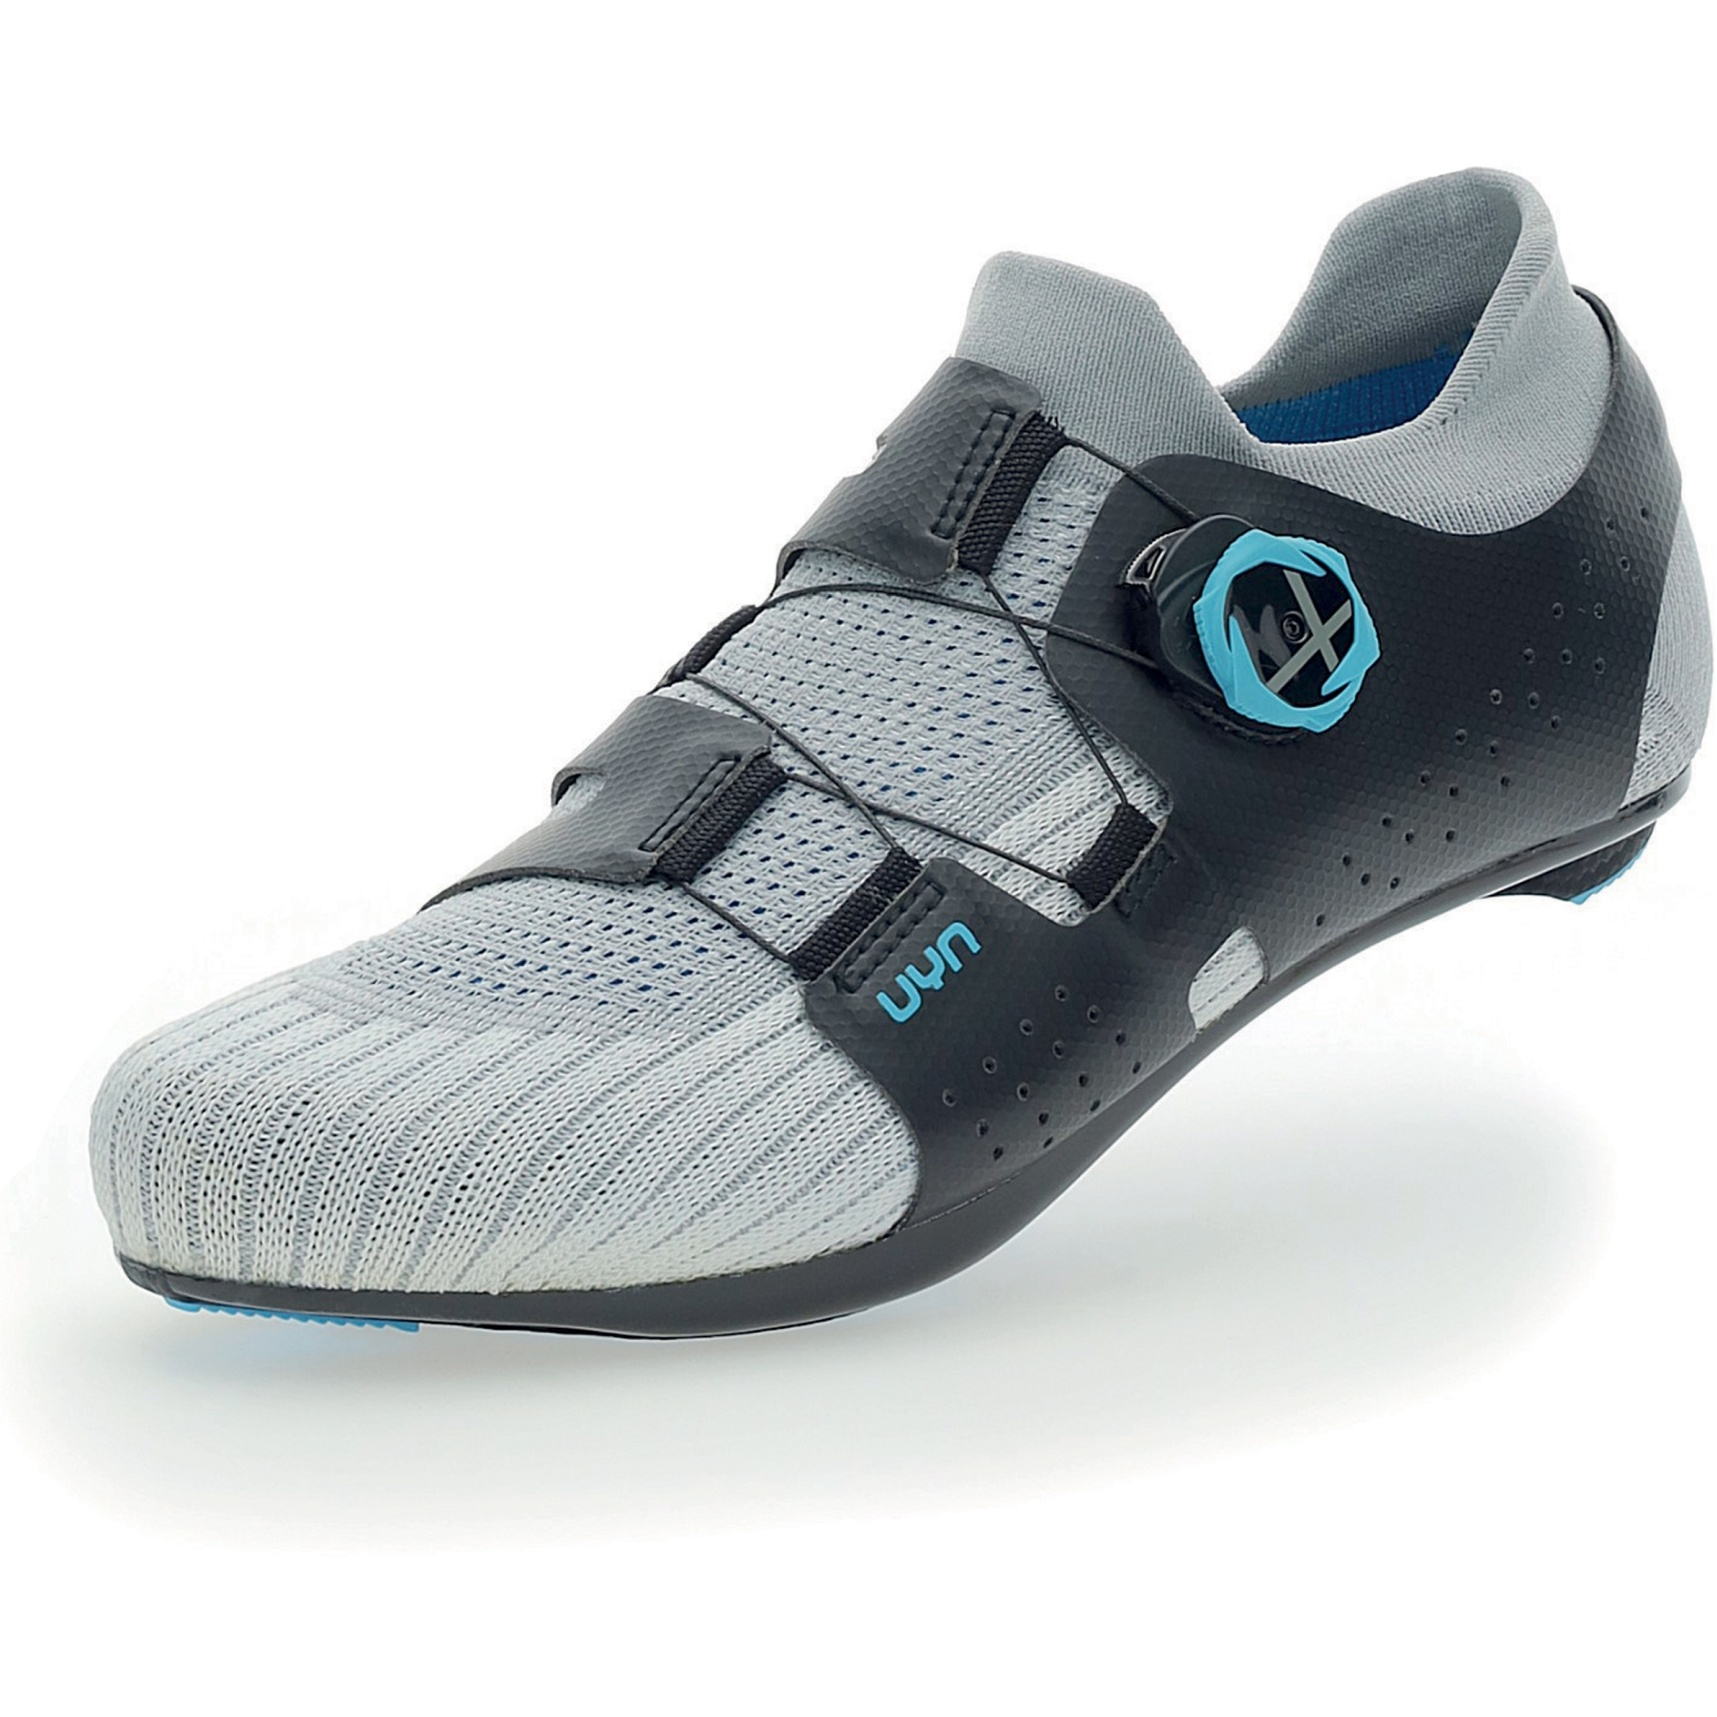 UYN Naked Carbon Road Bike Shoes - Silver/Blue